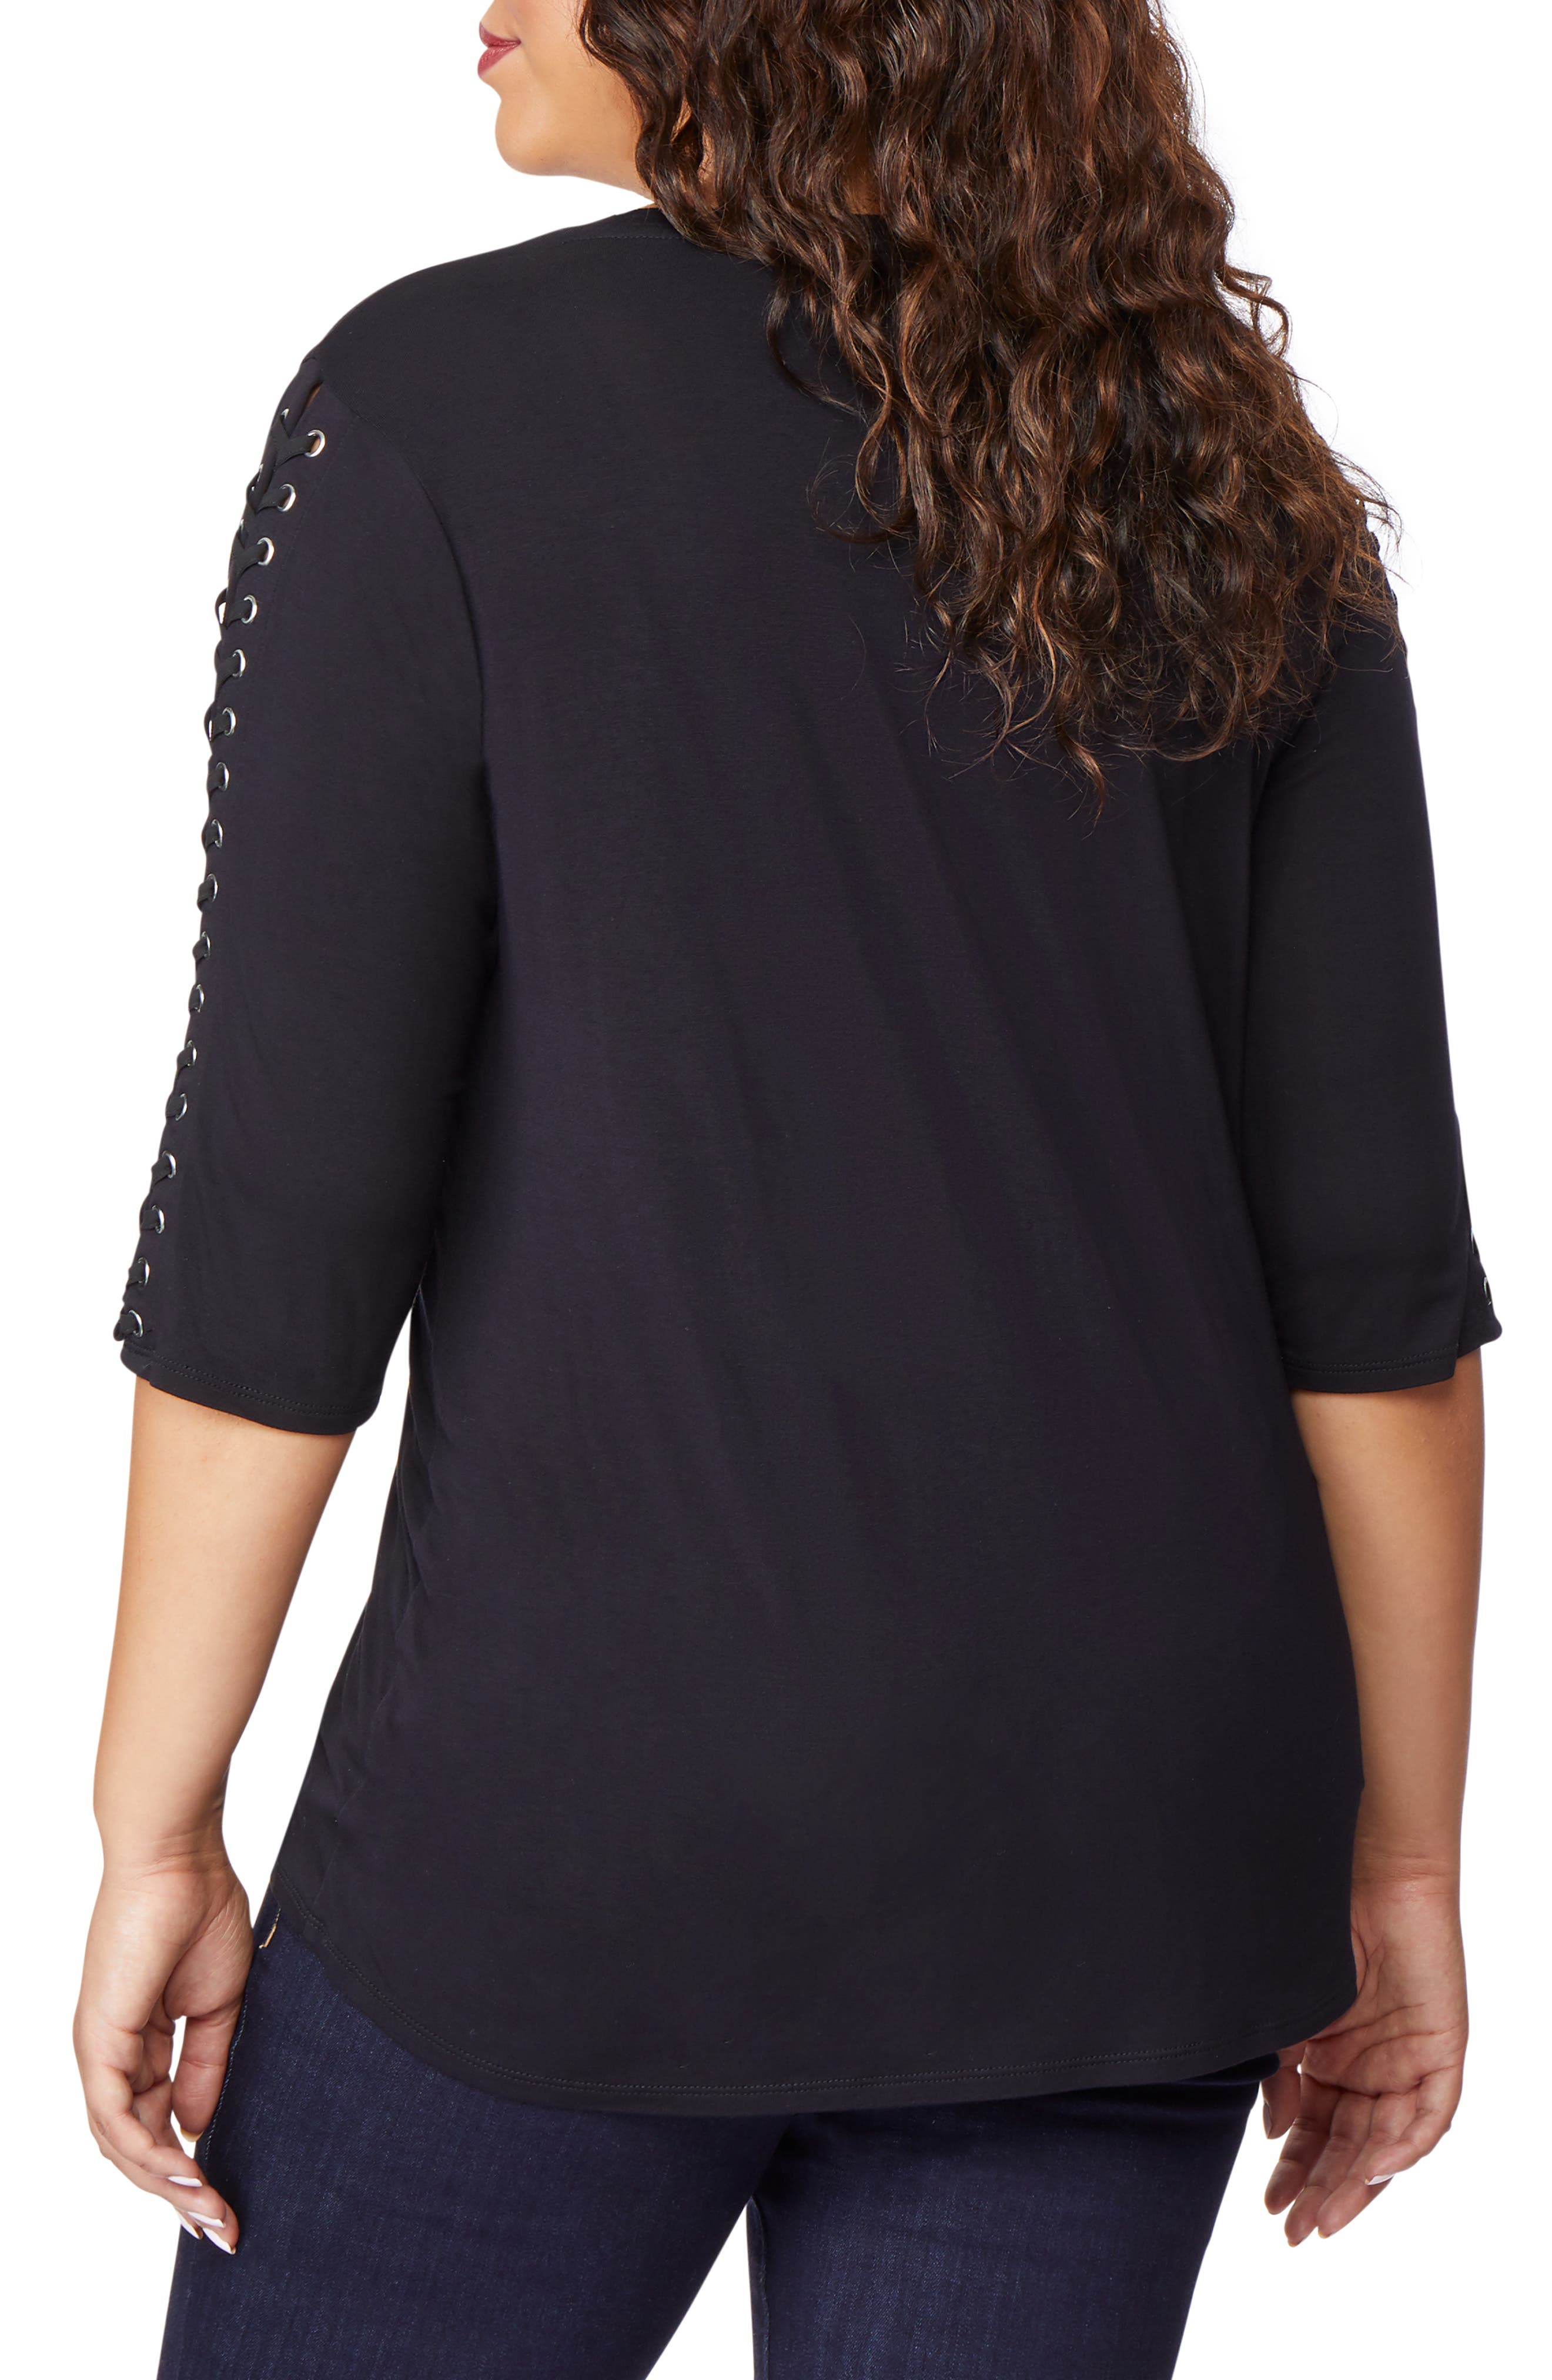 Lace-Up Sleeve Top,                             Alternate thumbnail 2, color,                             BLACK BEAUTY